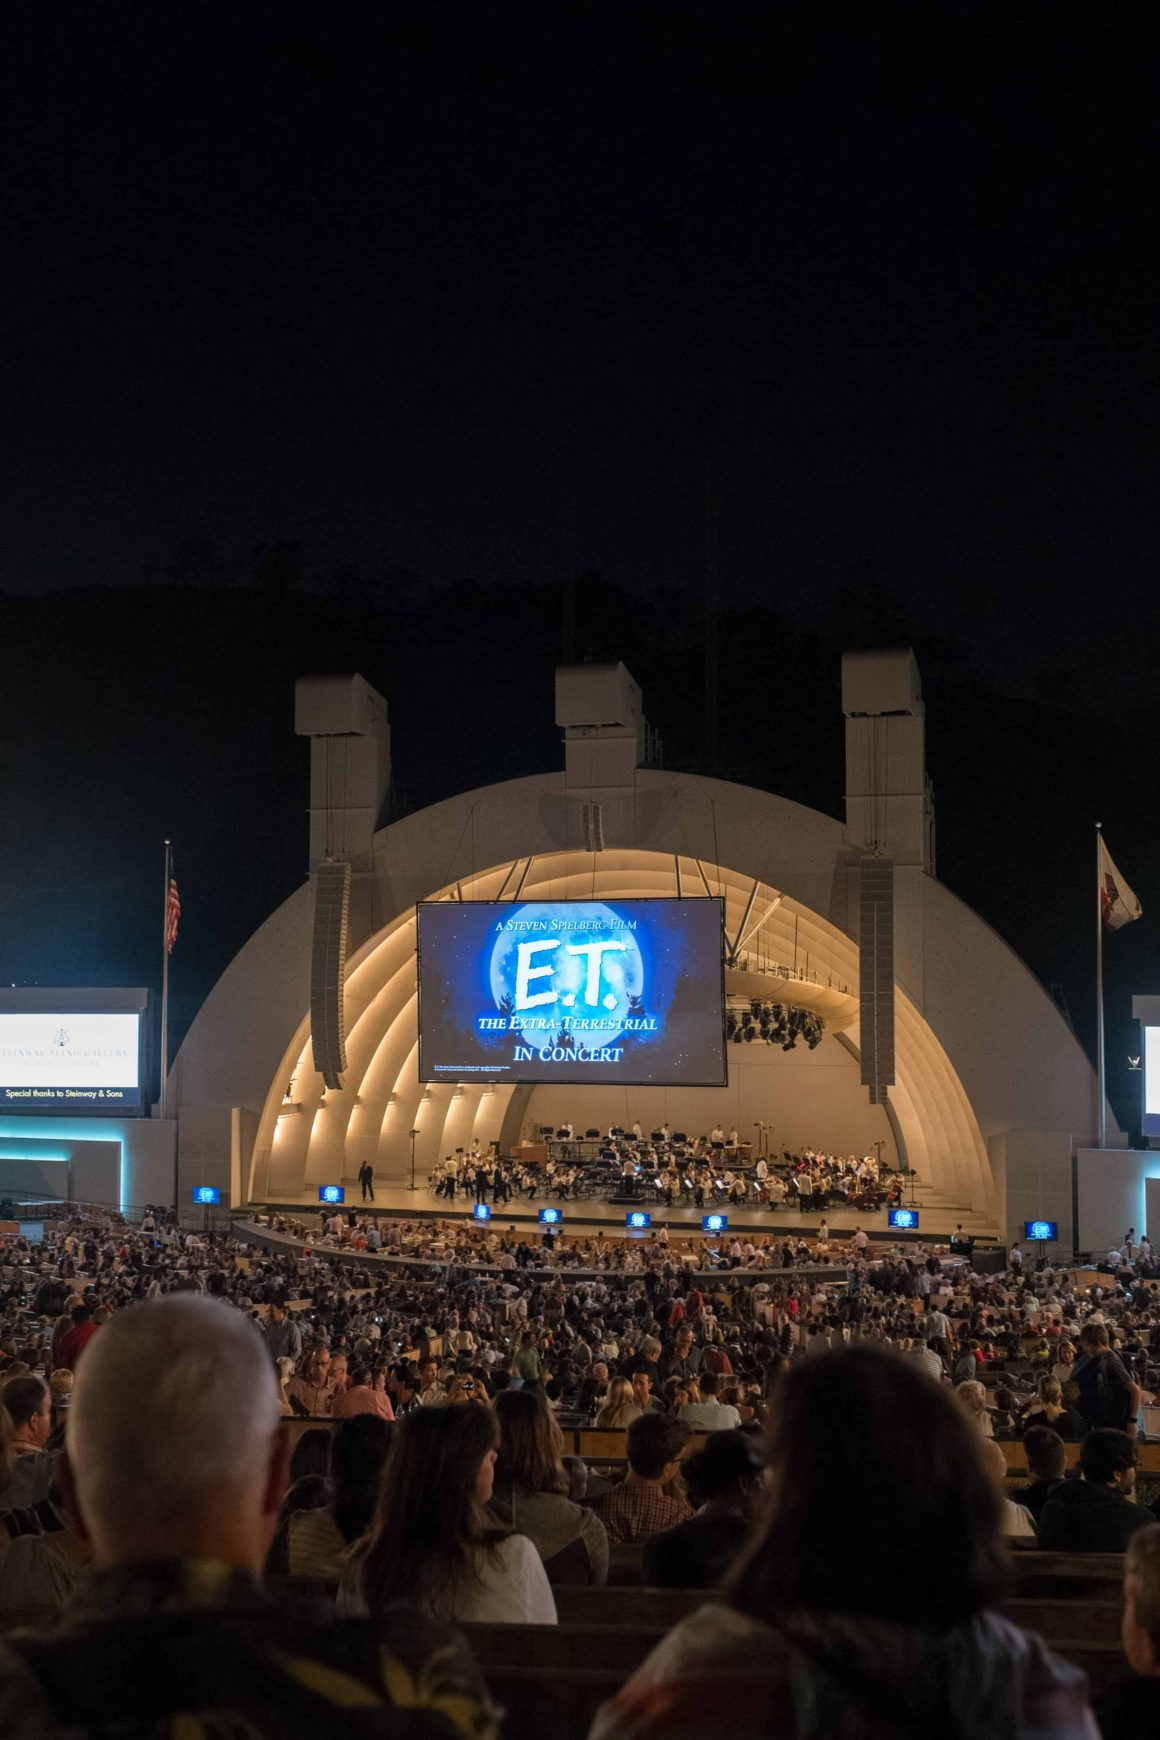 Week No. 14   E.T. In Concert at The Hollywood Bowl